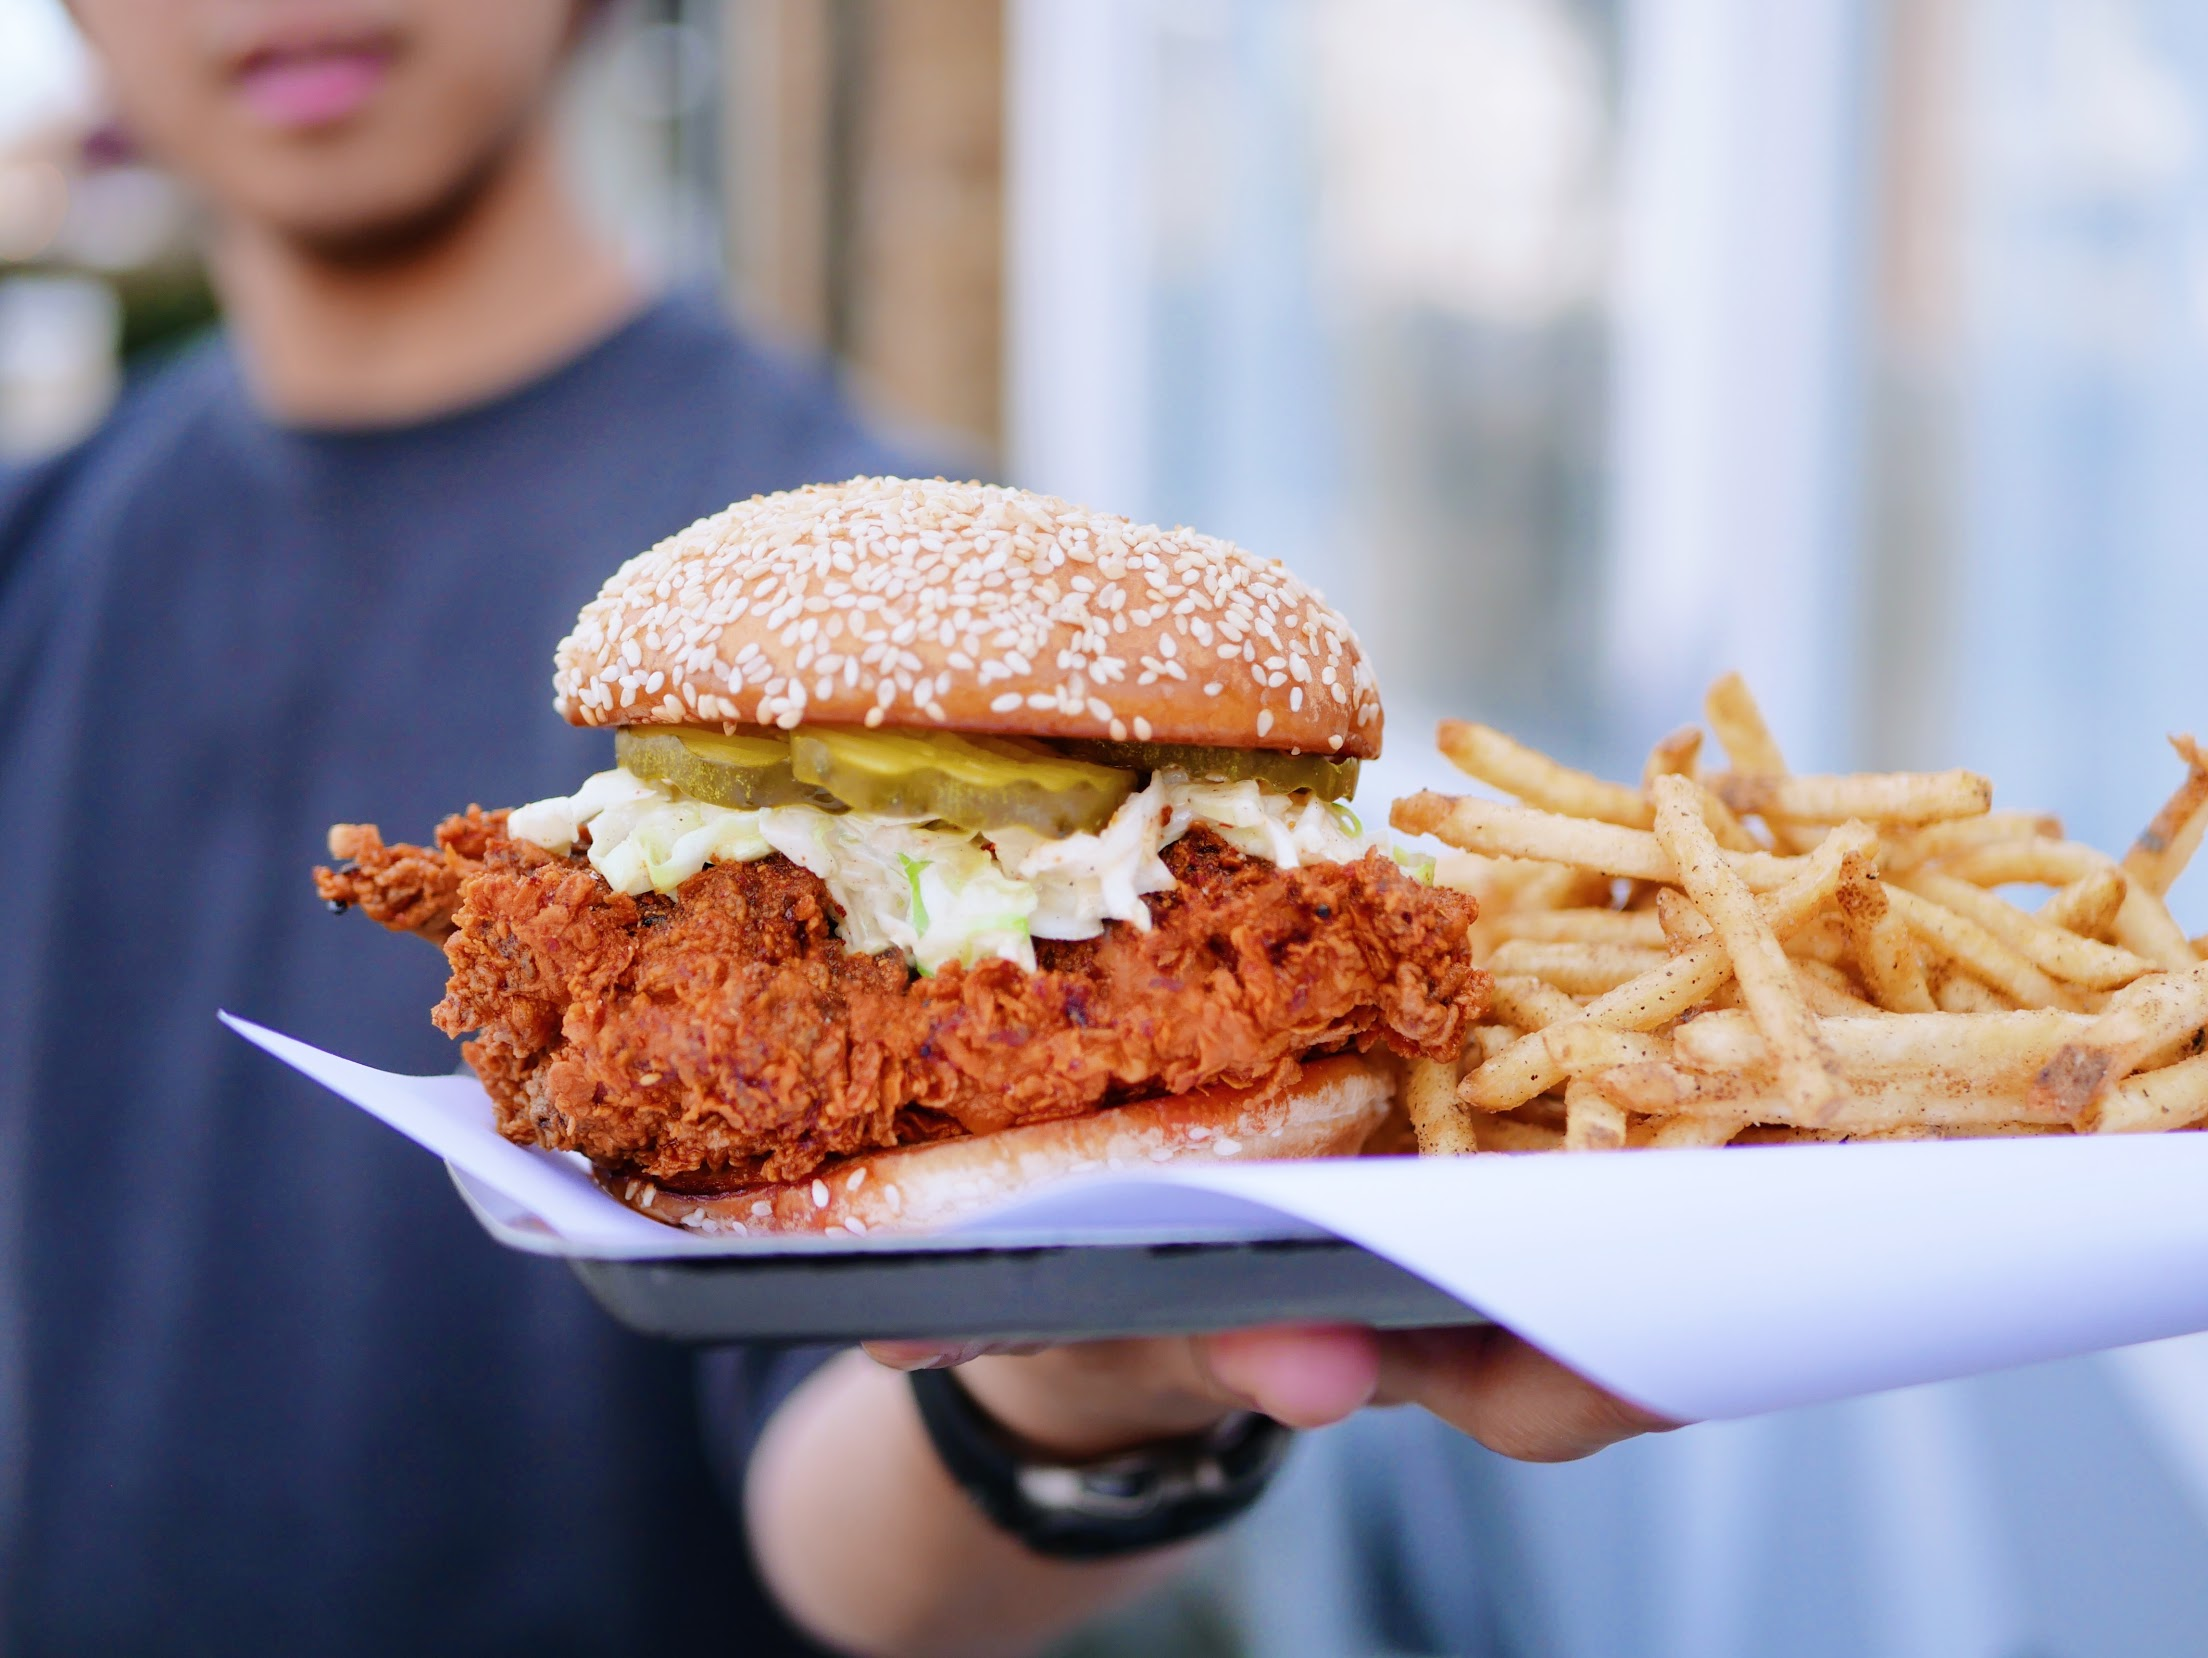 Himitsu's Chef Is Opening a Place for Spicy Chicken Sandwiches in Virginia